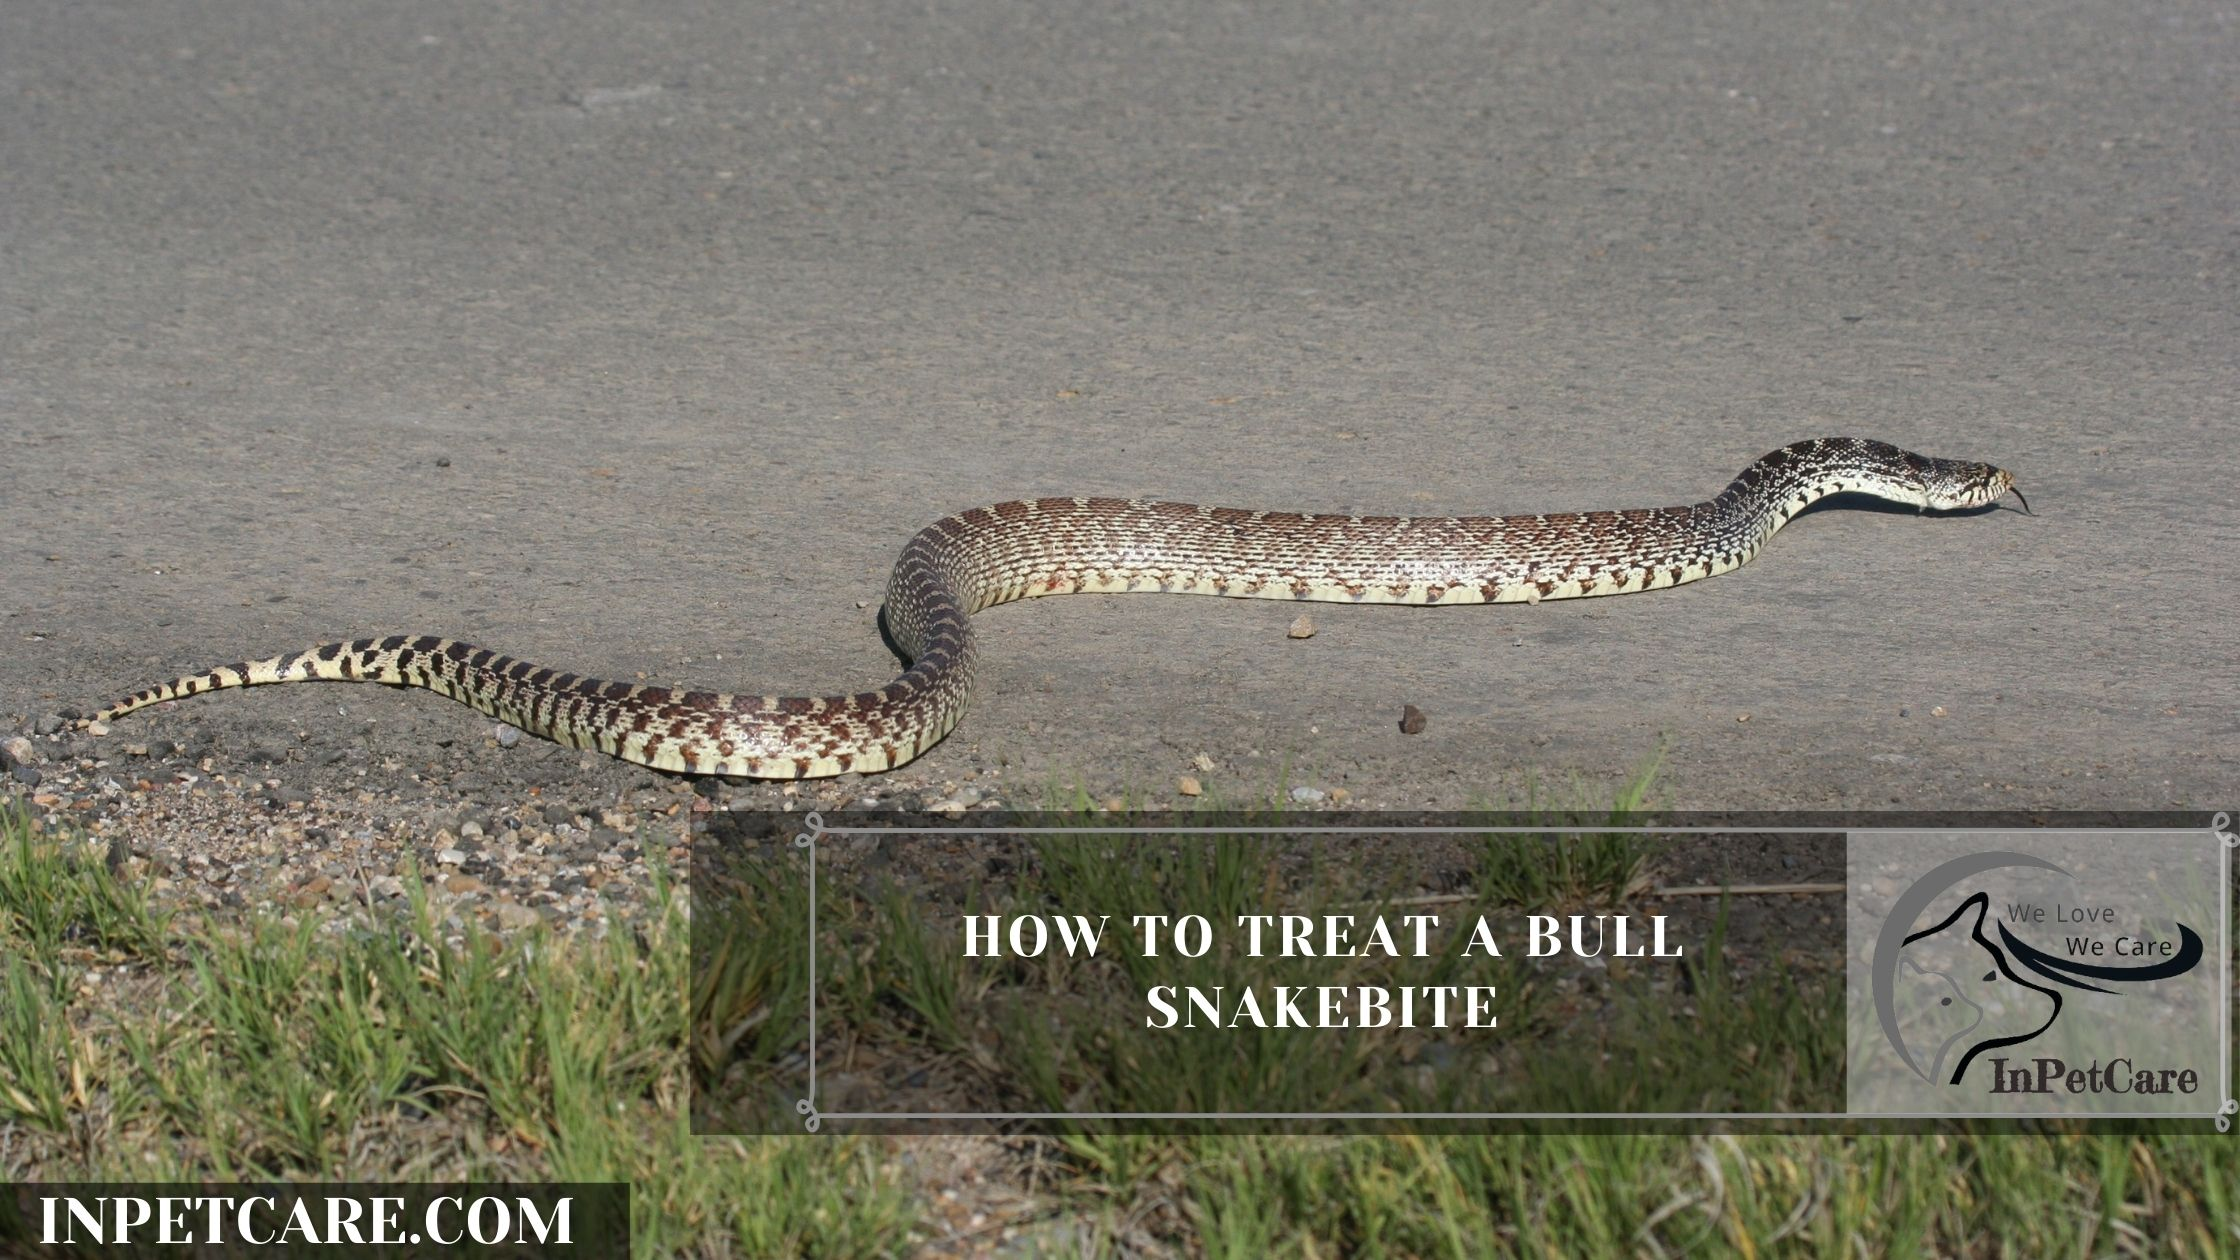 How To Treat a Bull Snakebite